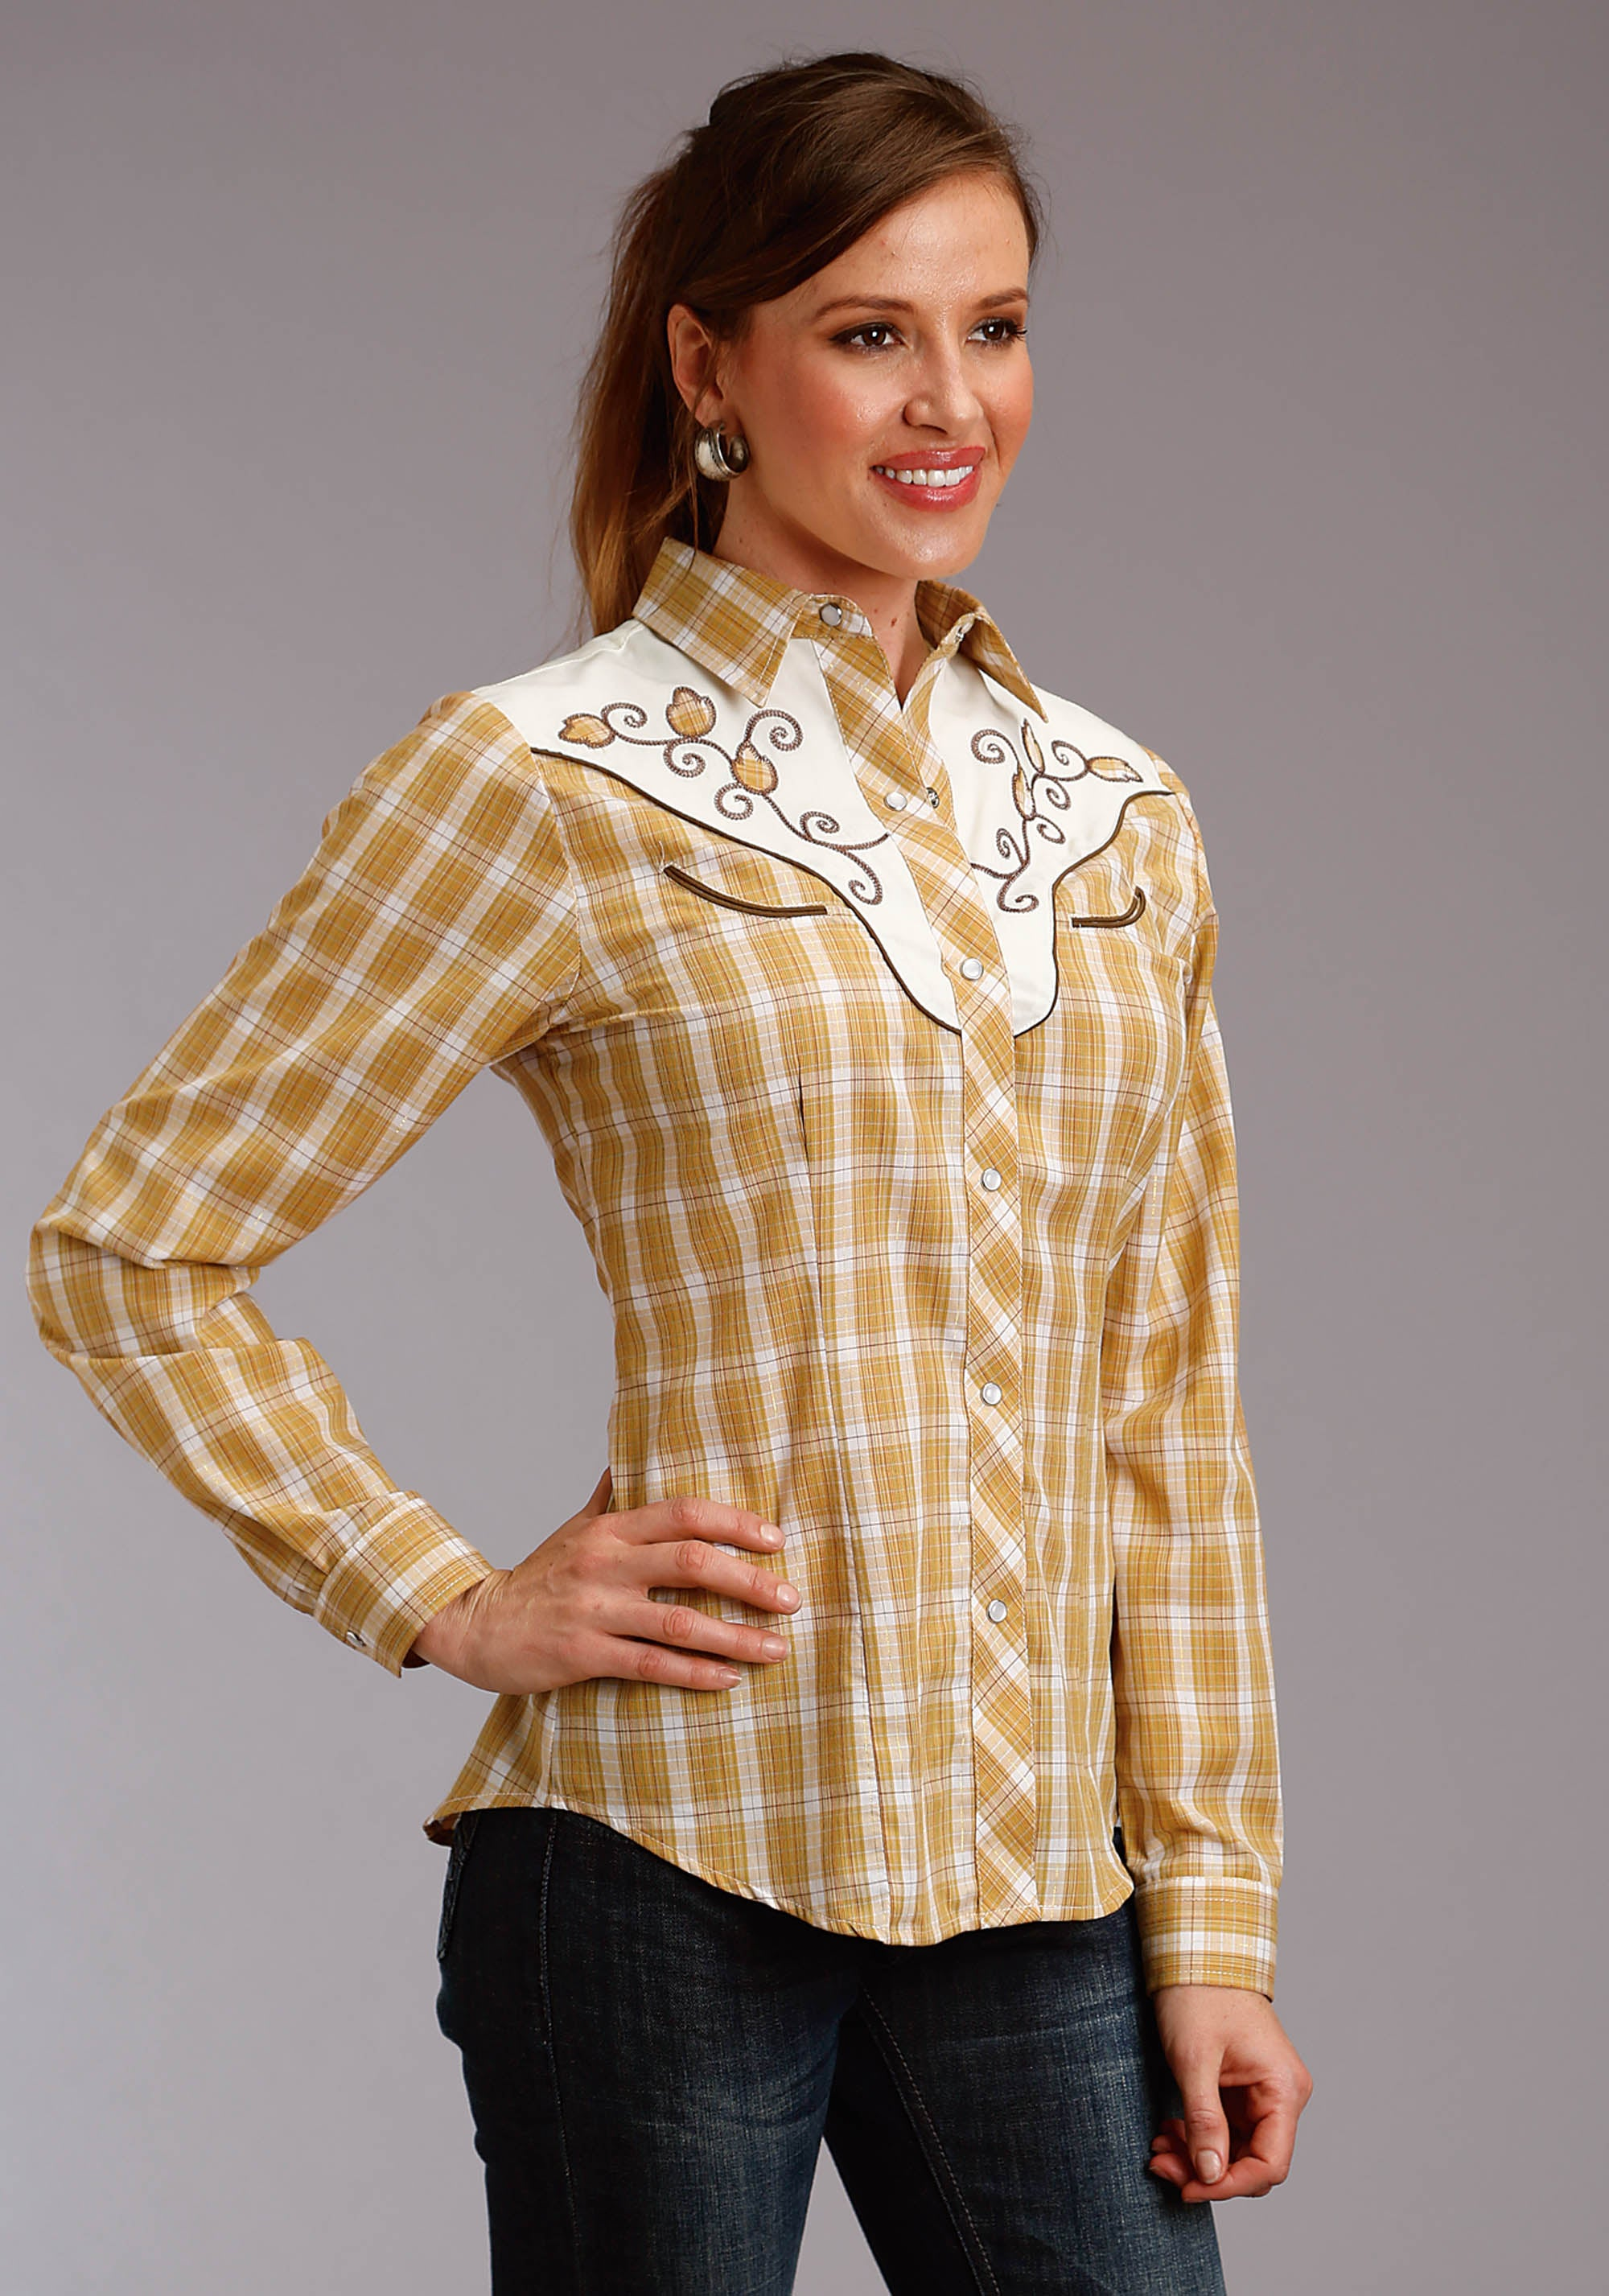 ROPER WOMENS BROWN 2884 TAN & WHITE PLAID W/GOLD LUREX KARMAN SPECIAL STYLES LONG SLEEVE